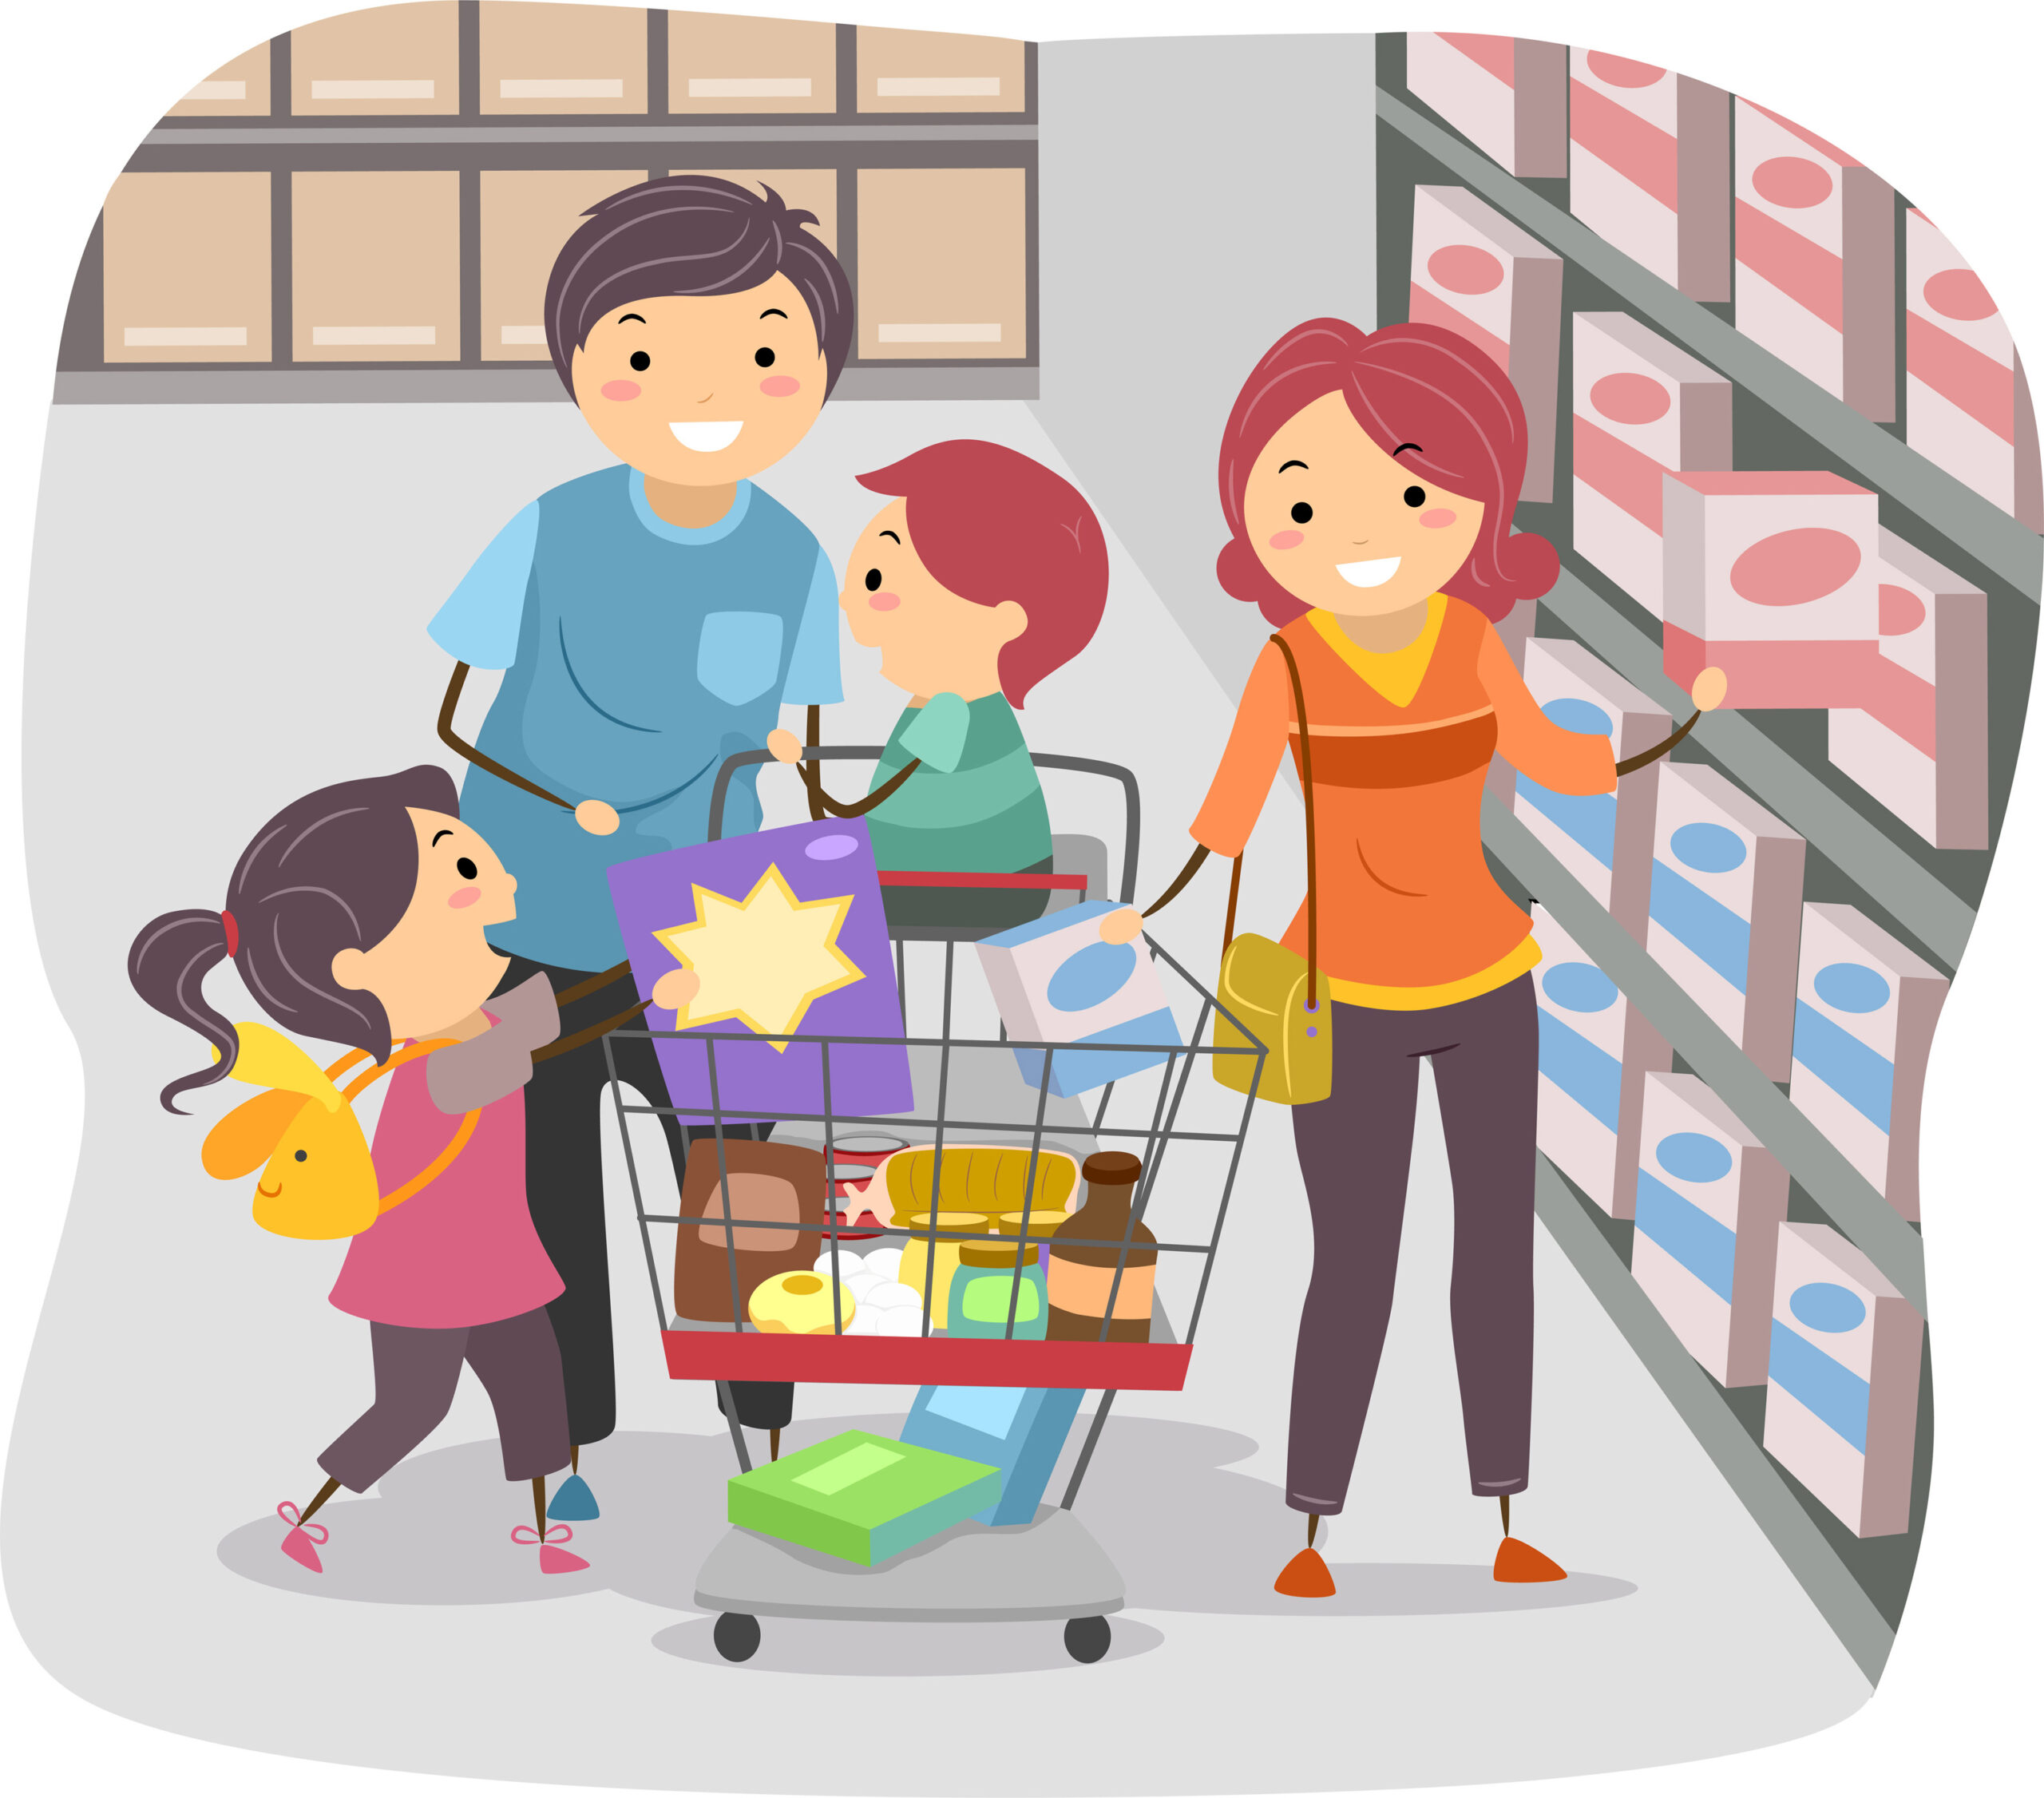 Illustration of Stickman Family Shopping in a Grocery Store; Shutterstock ID 145703213; purchase_order: -; job: -; client: -; other: -